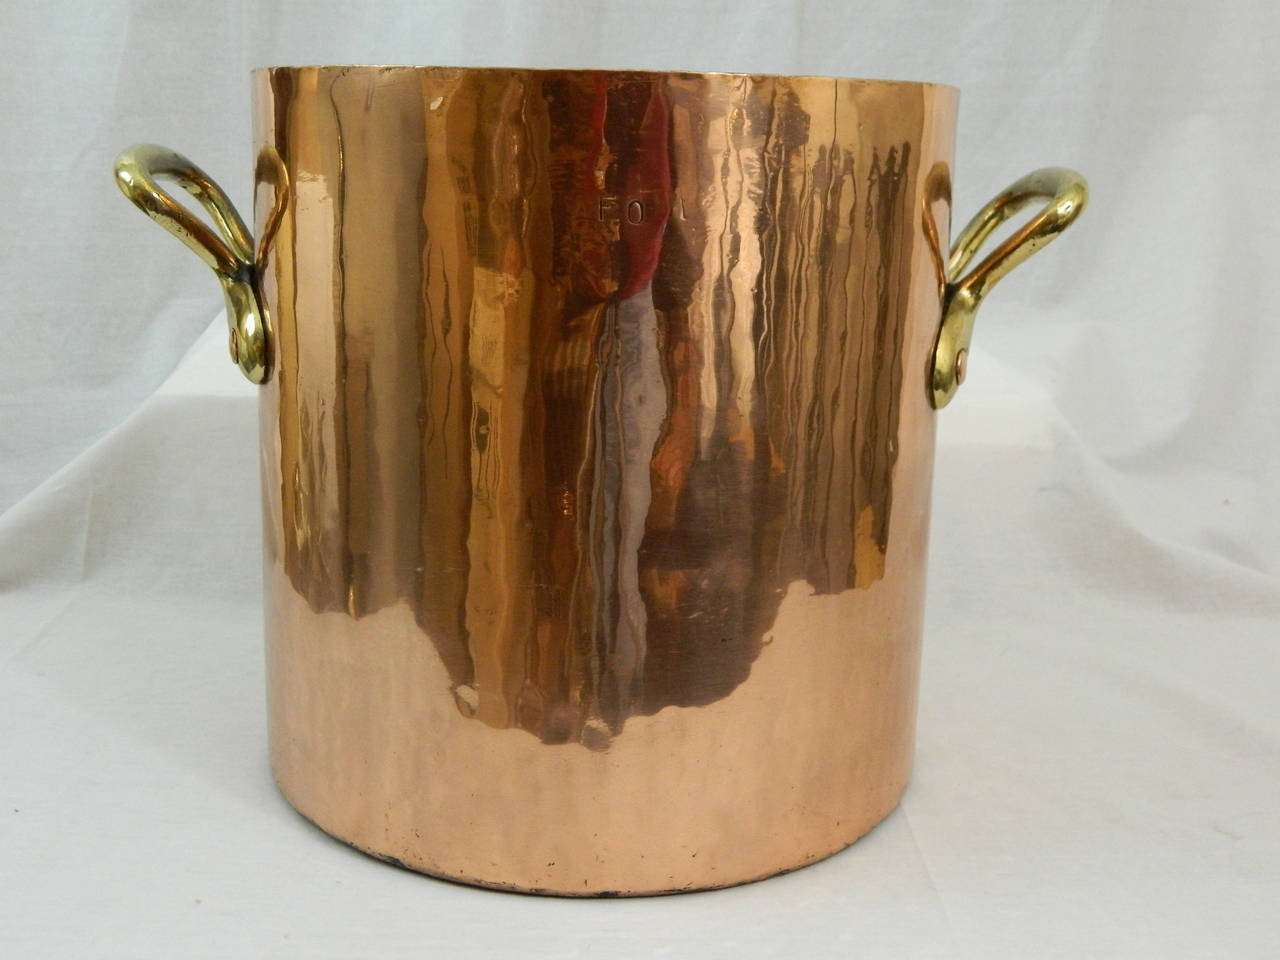 19th Century large copper stock pot with brass handles.  Professionally cleaned and polished.  32 quart